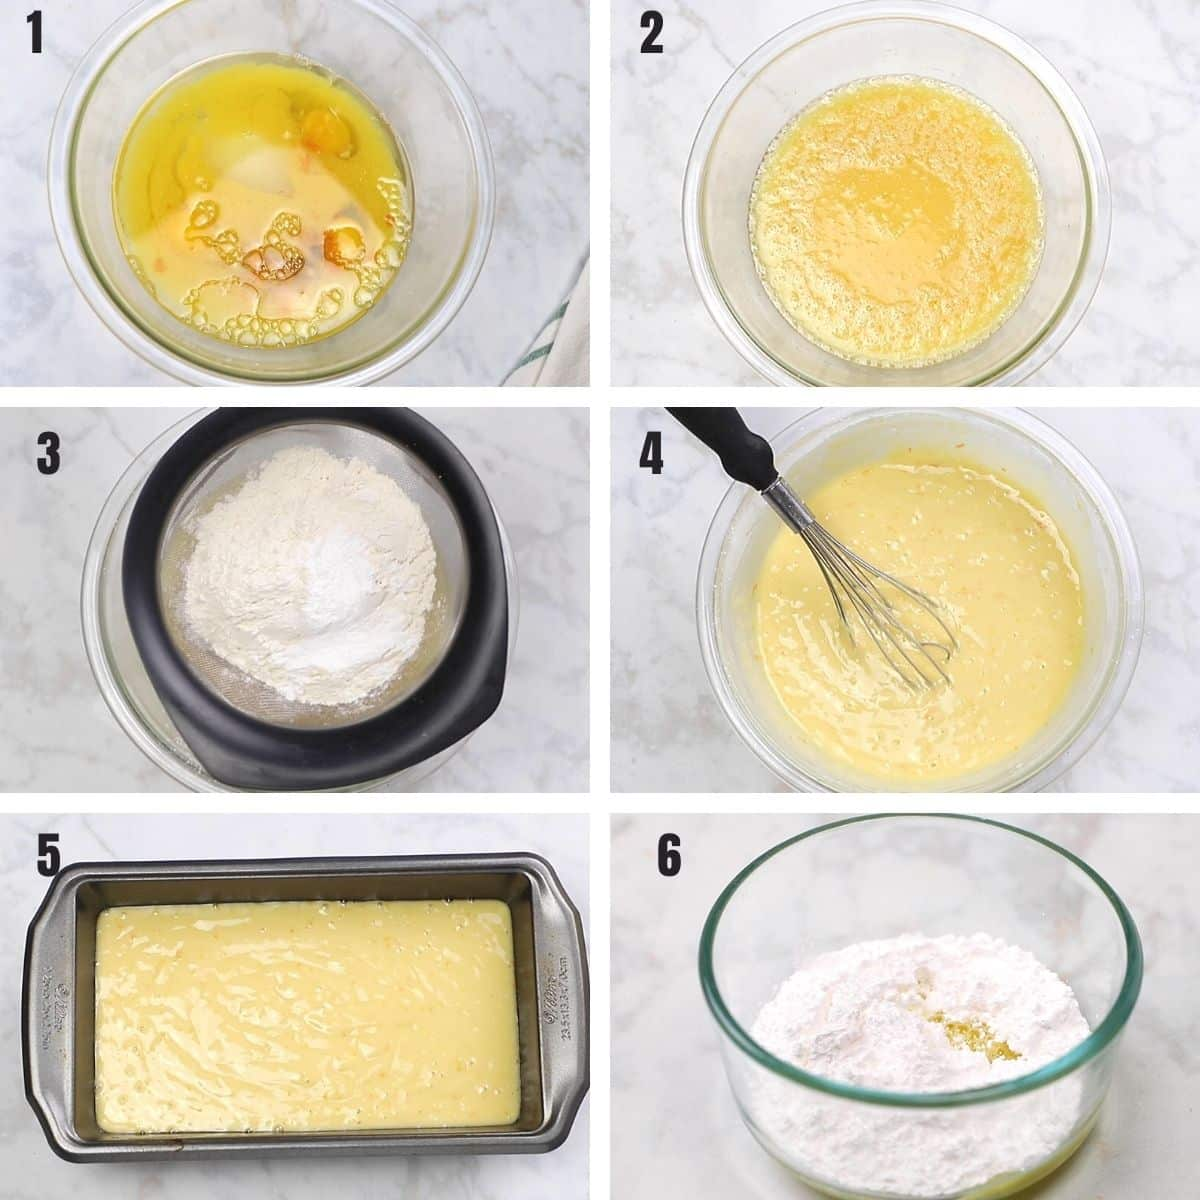 A collage of 6 images showing how to make amazing orange juice cake.